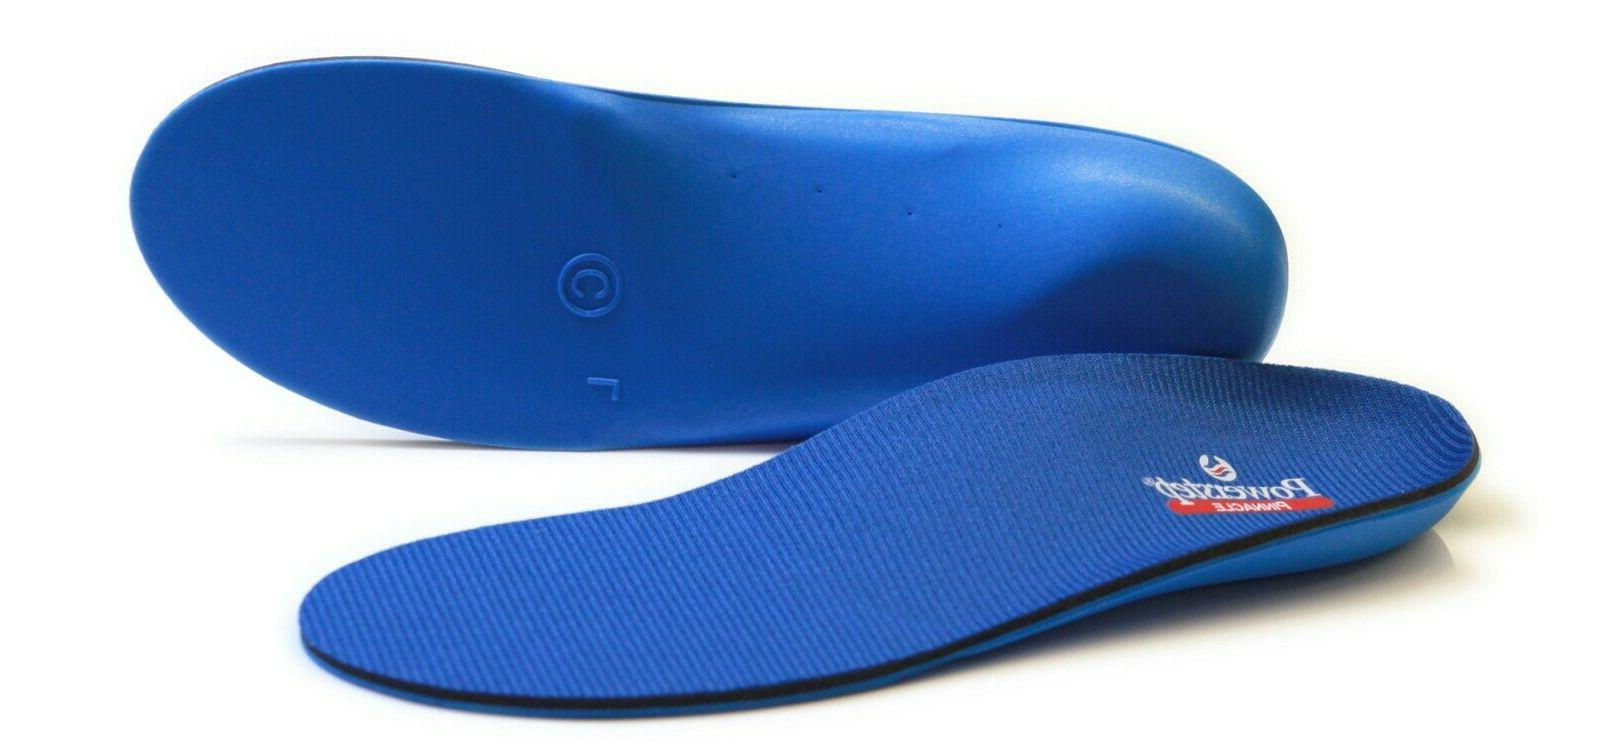 pinnacle insoles orthotics compared to protech full